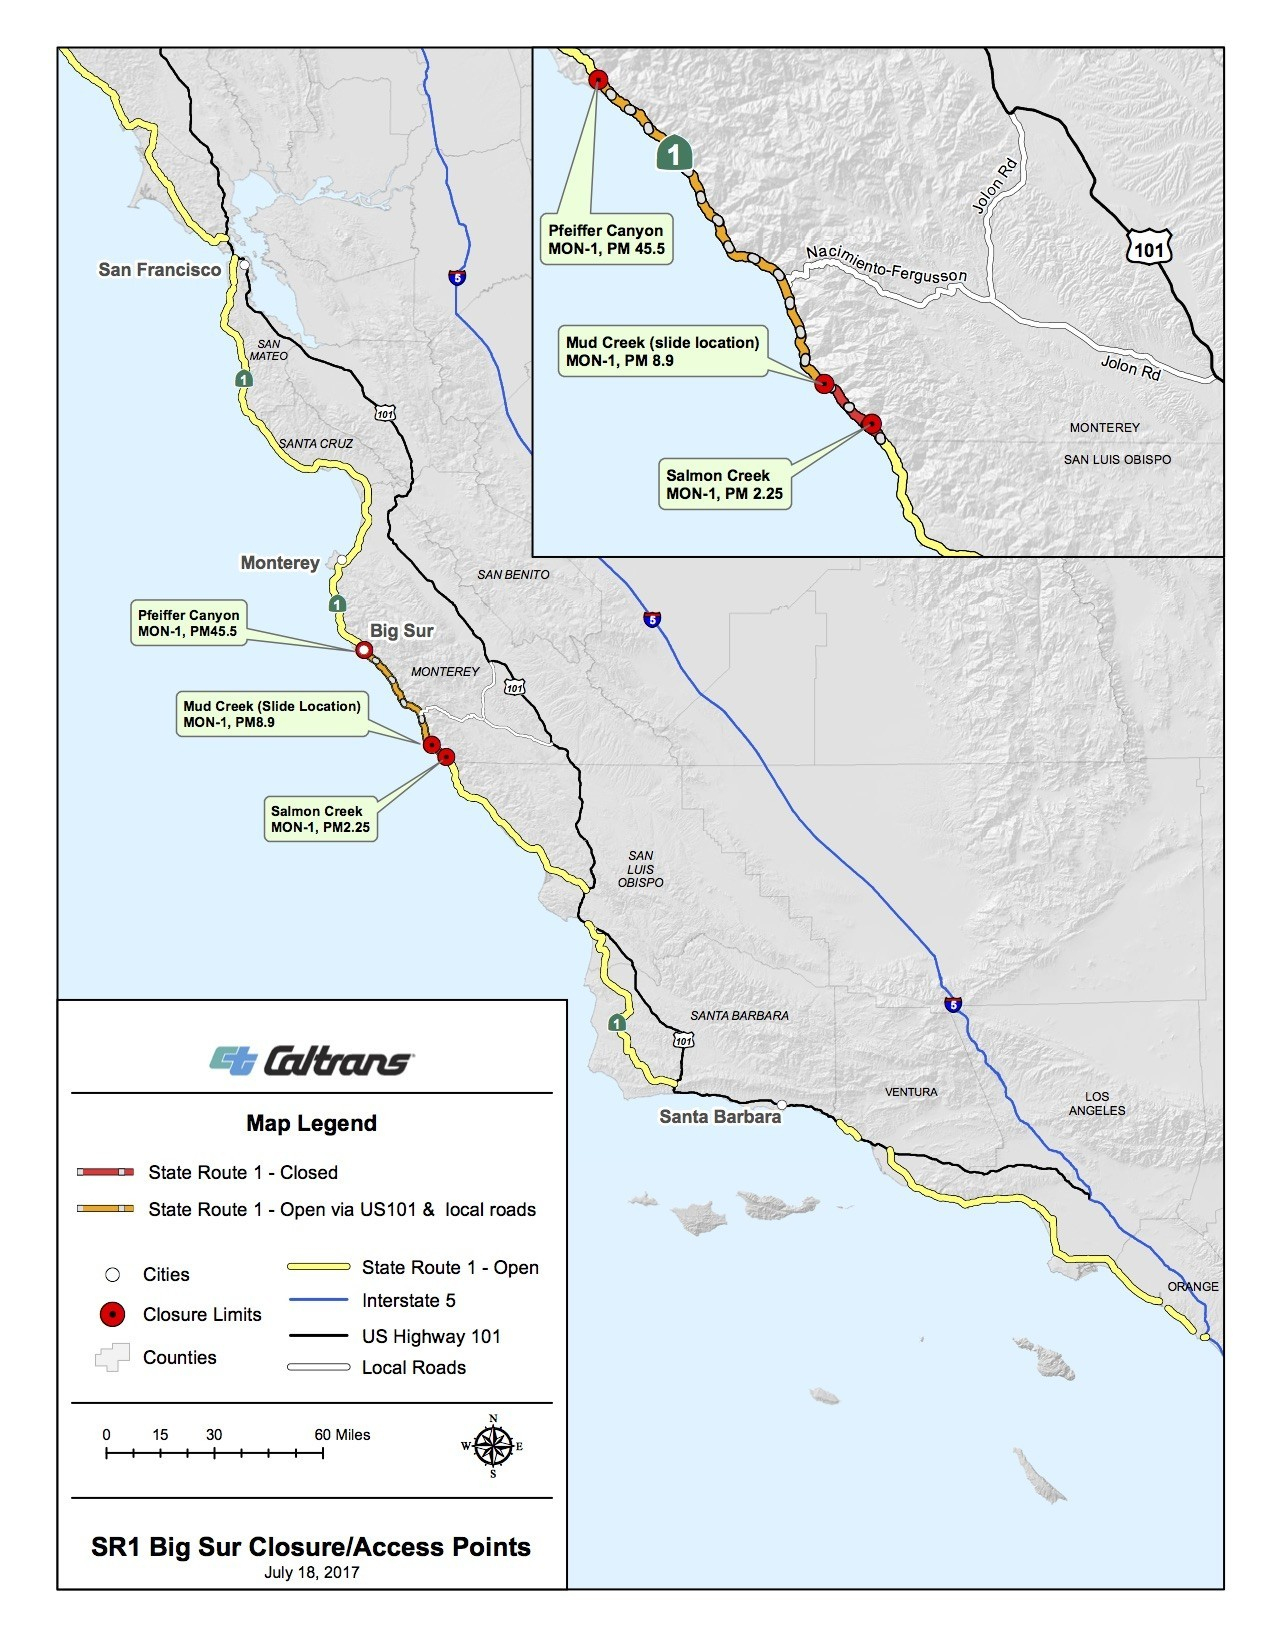 Map New Of California Highway Closures Map - Klipy - California Highway 1 Closure Map